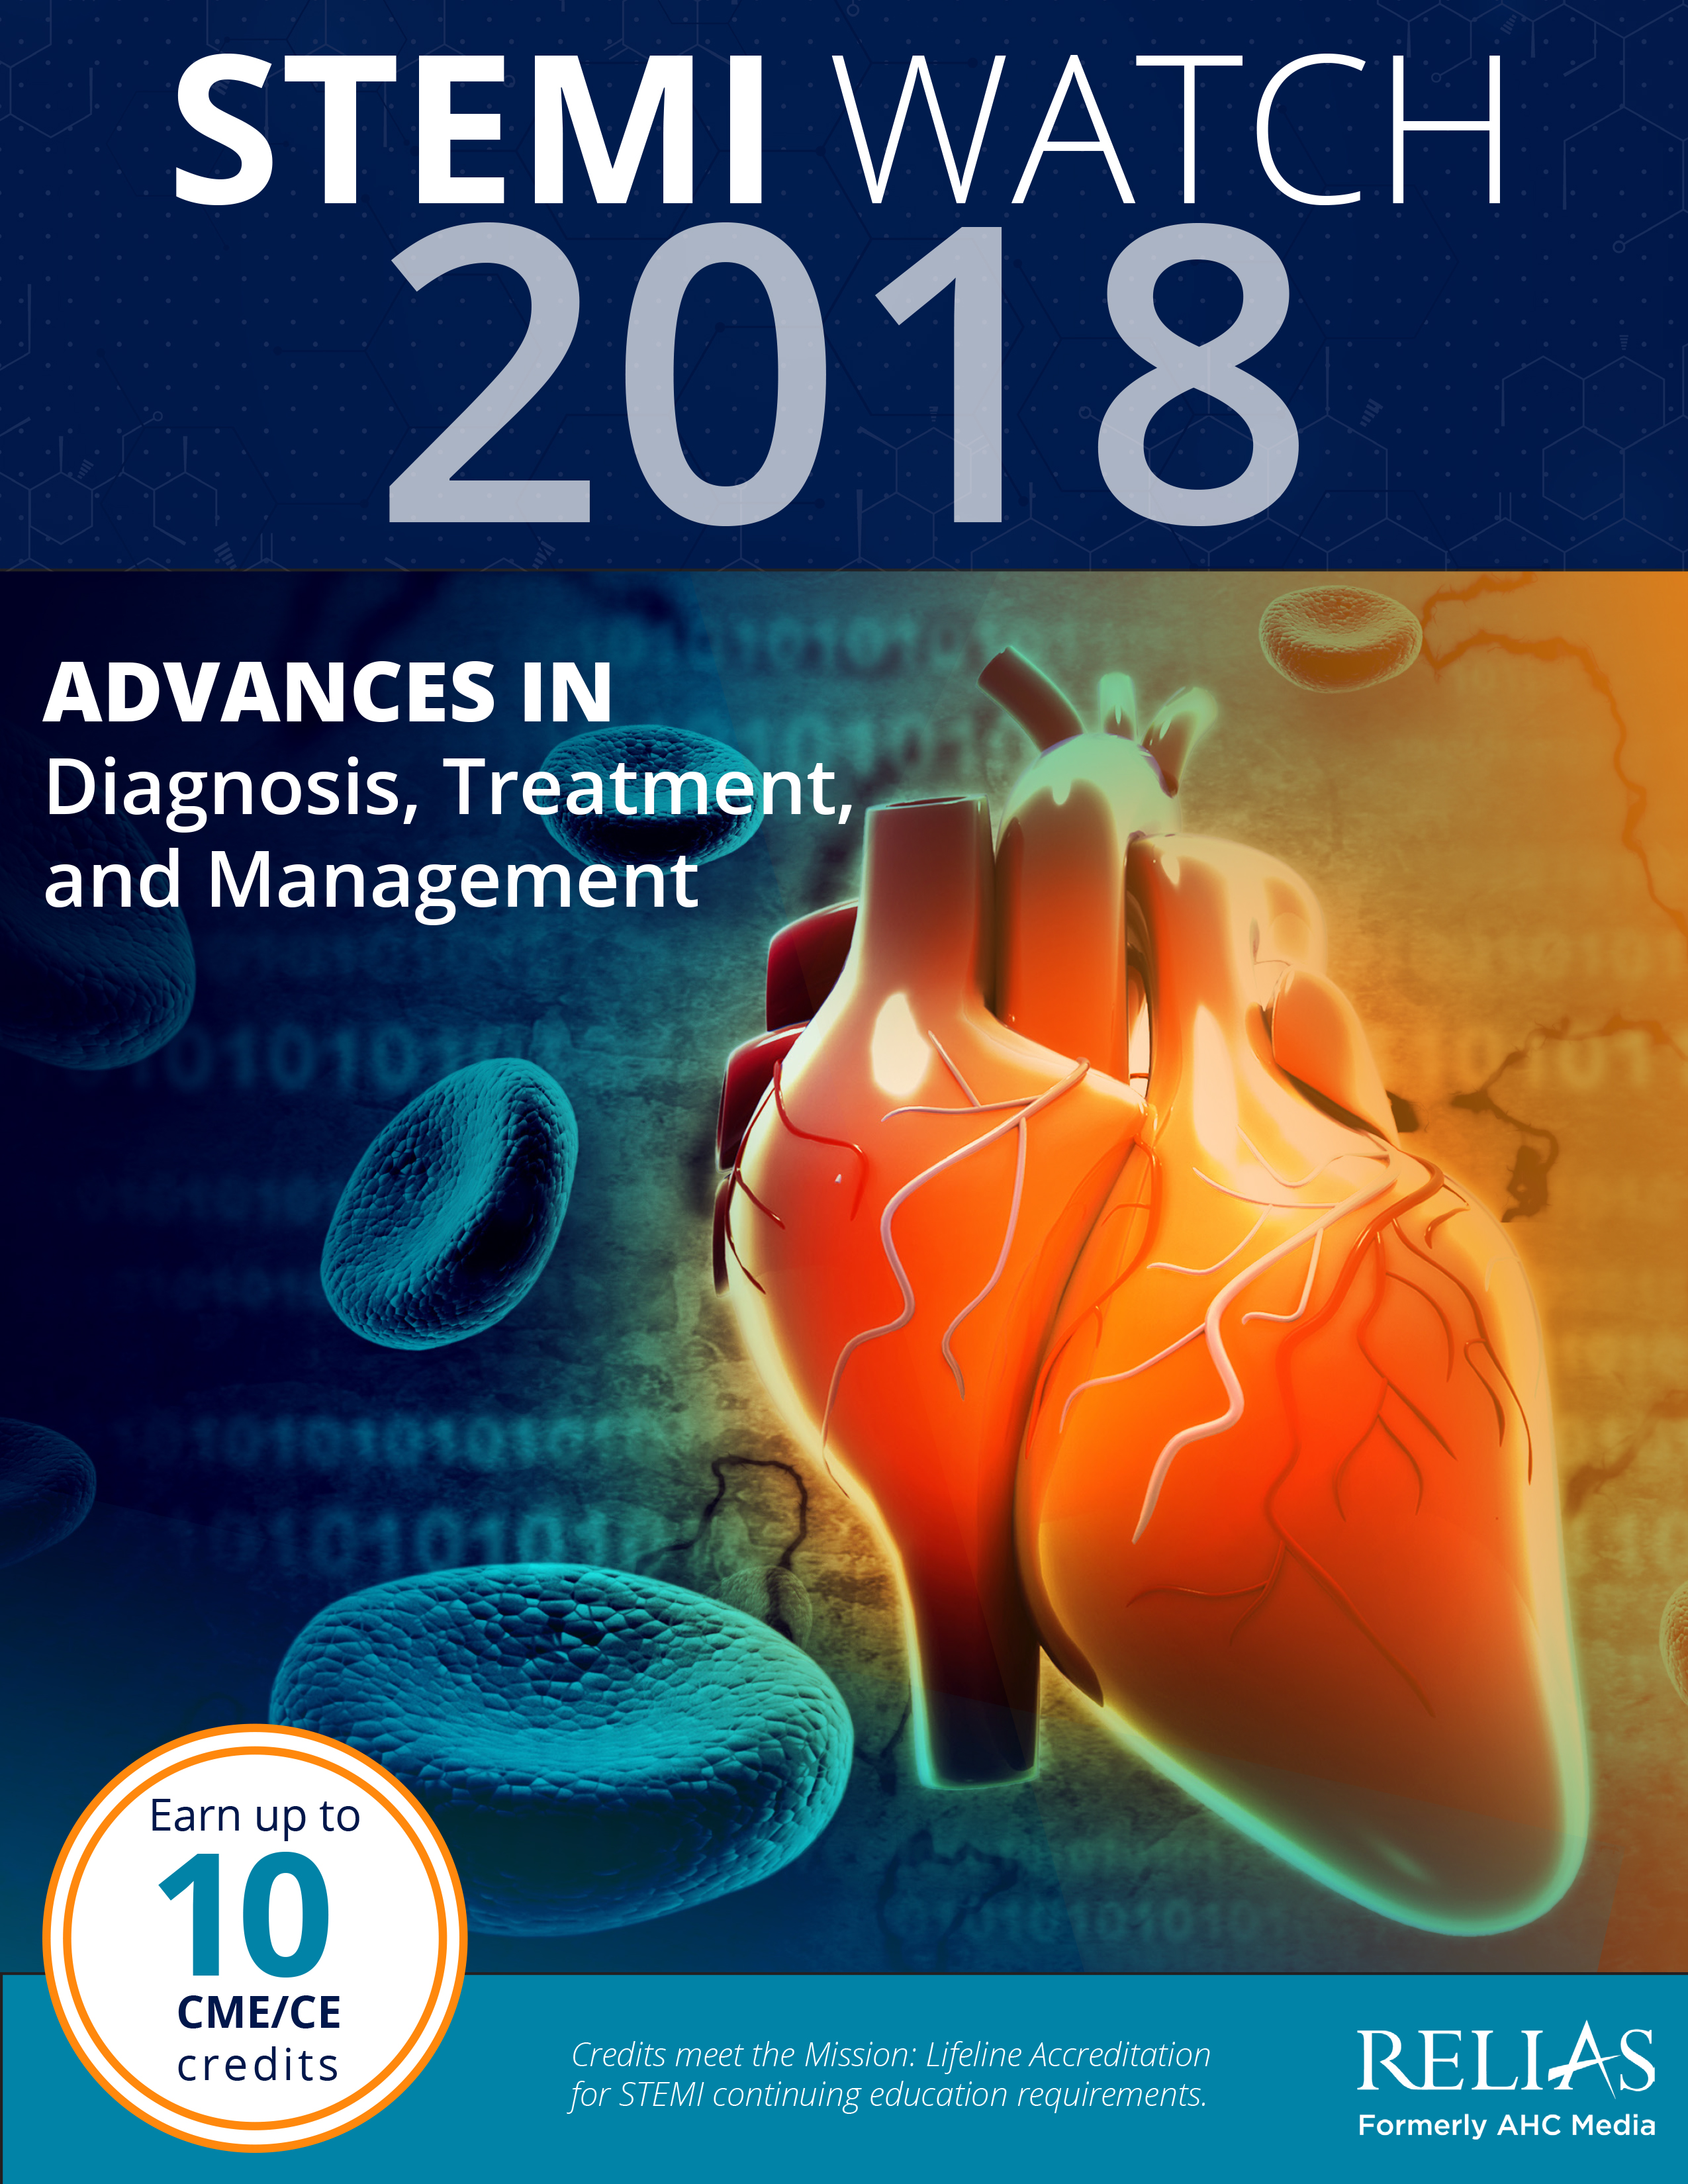 STEMI Watch 2018: Advances in Diagnosis, Treatment, and Management